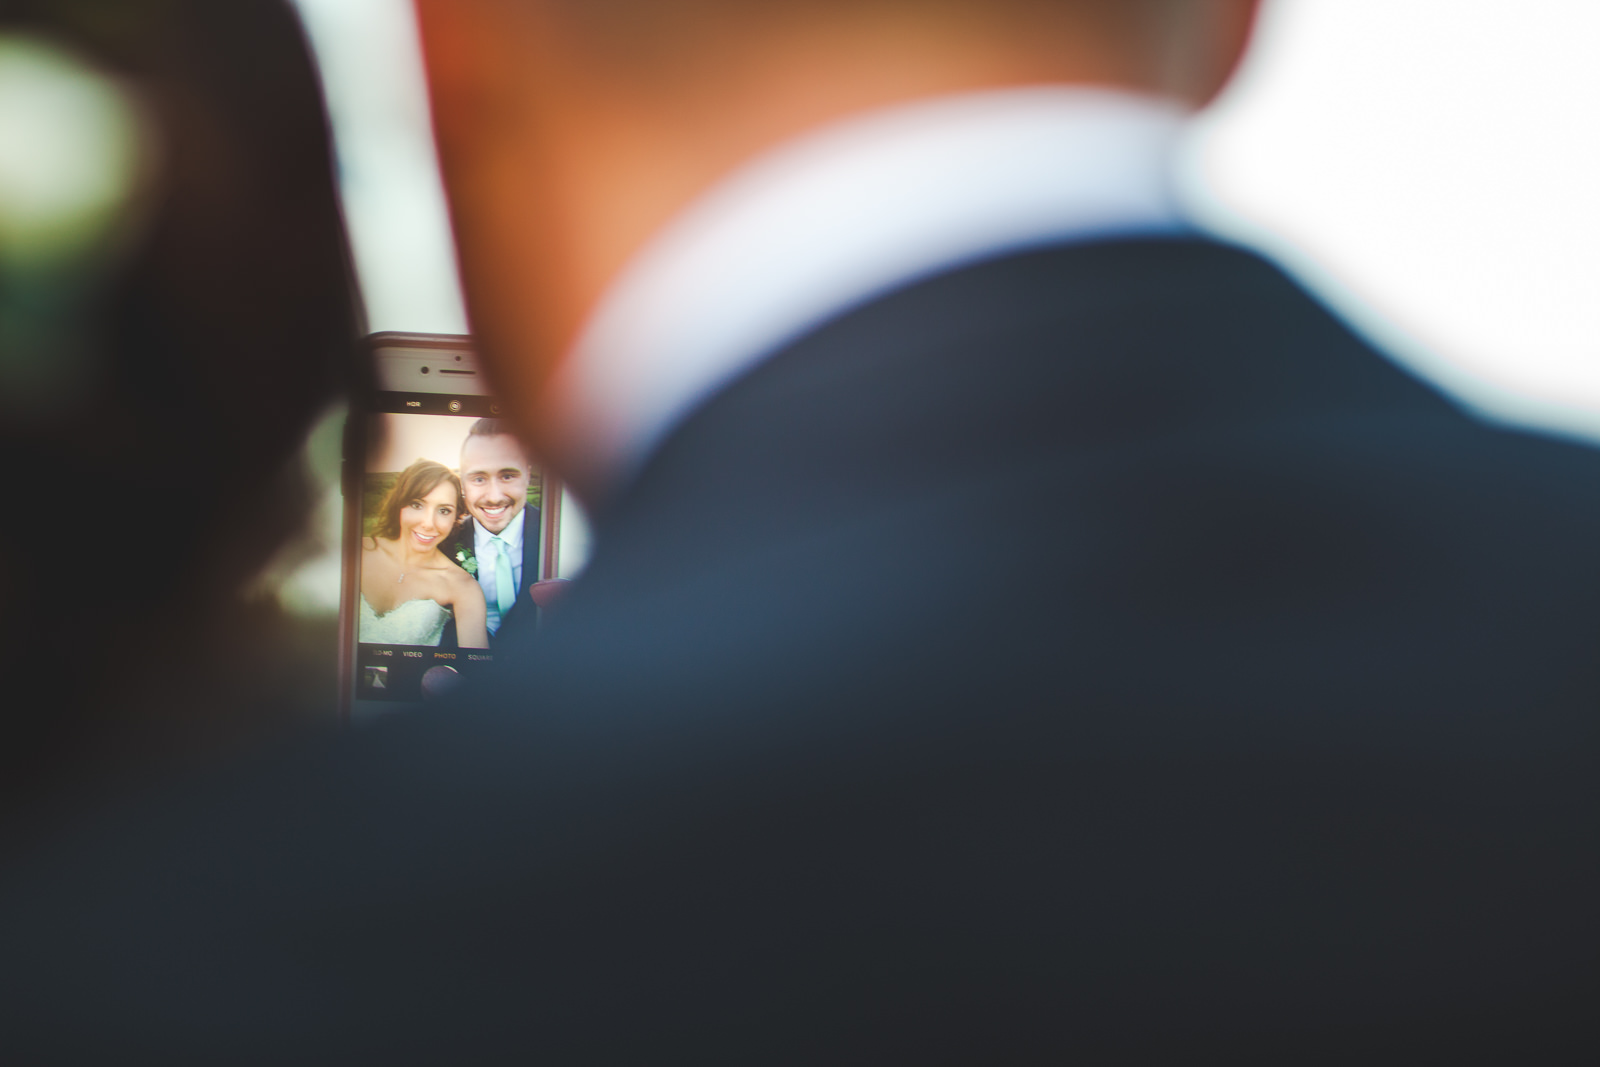 Catching an iphone selfie of a bride and groom couple from behind